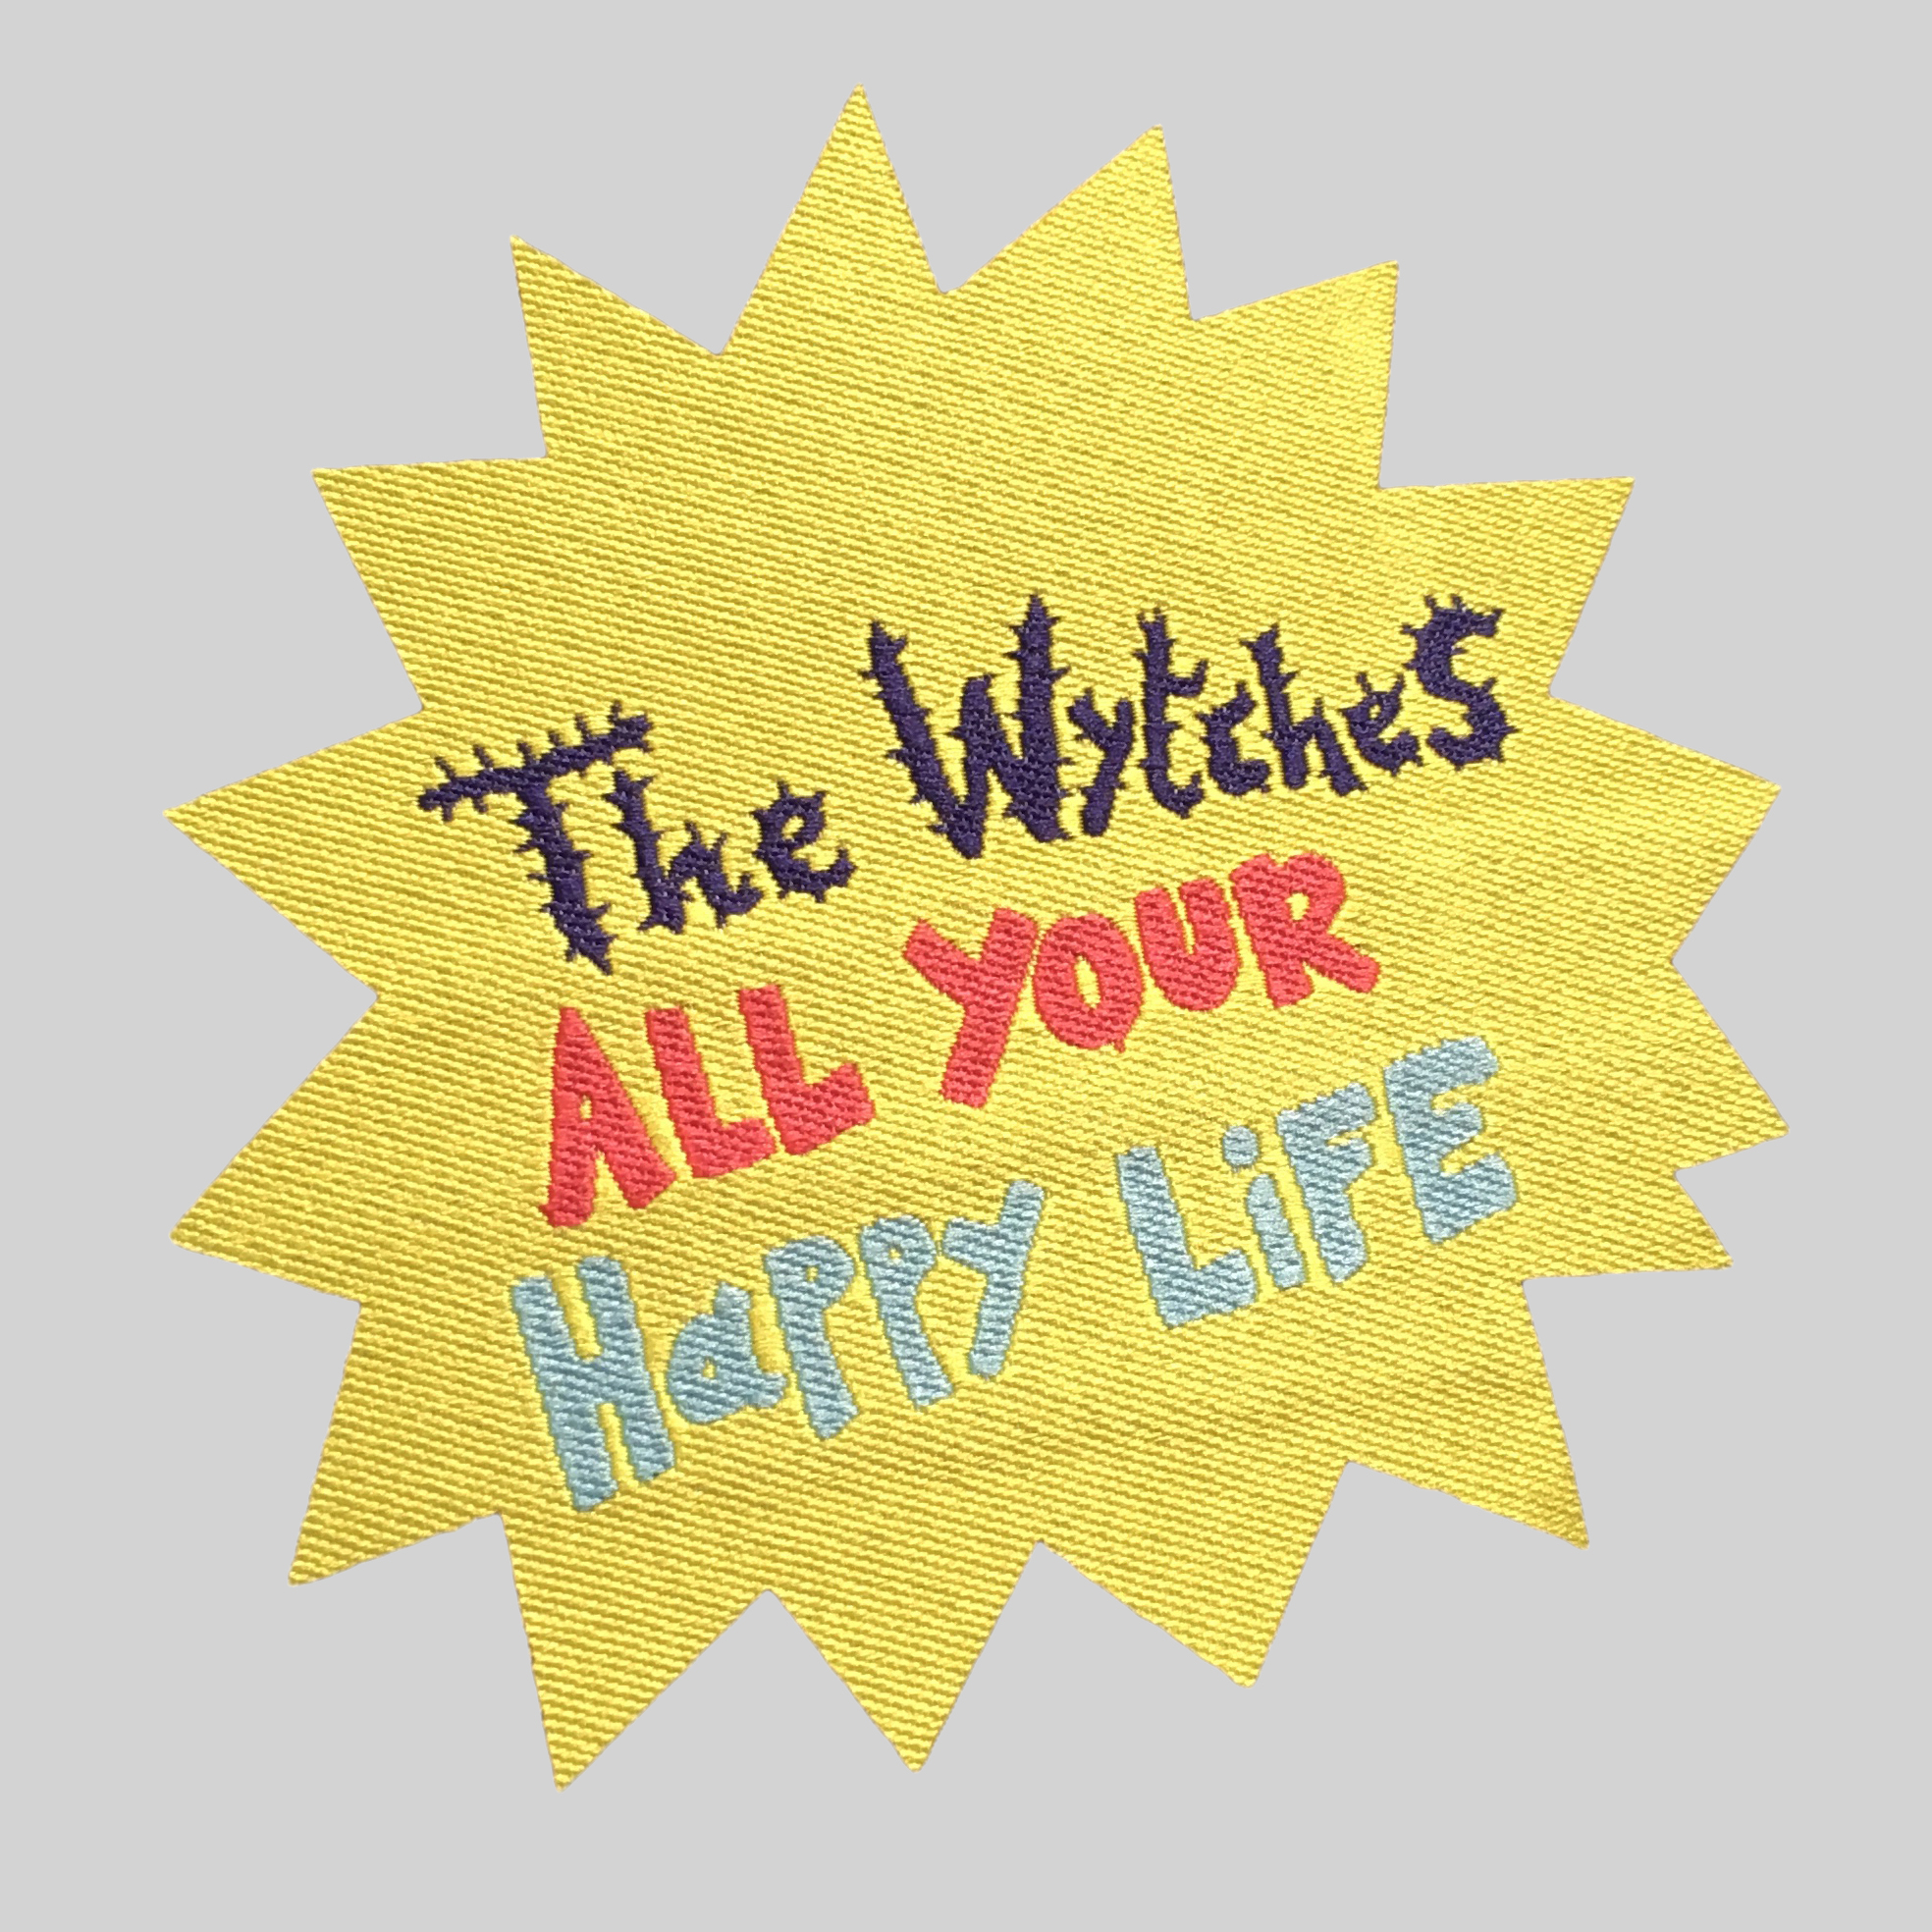 The Wytches - All Your Happy Life patch - The Wytches